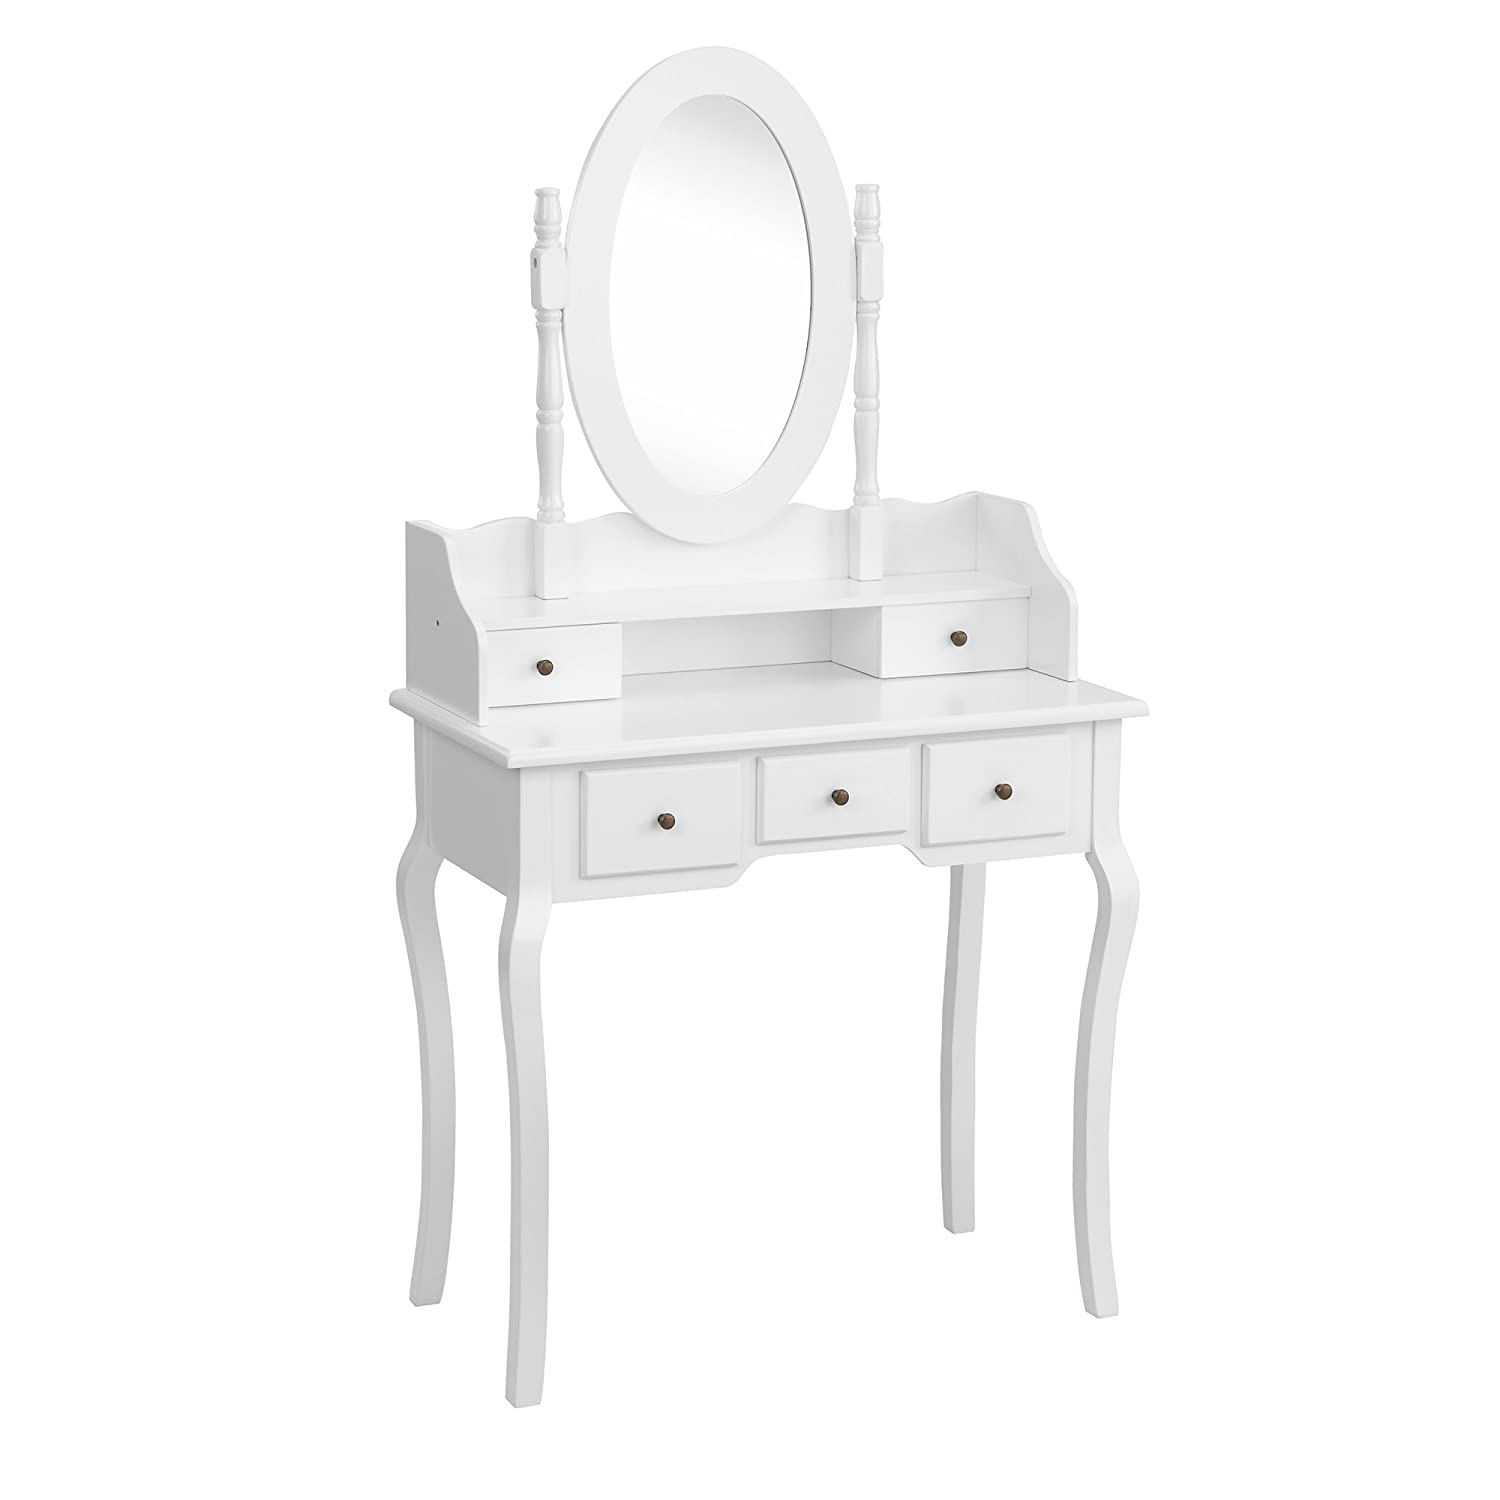 Beautify Bedroom Furniture Dressing Table Set With Mirror With 5